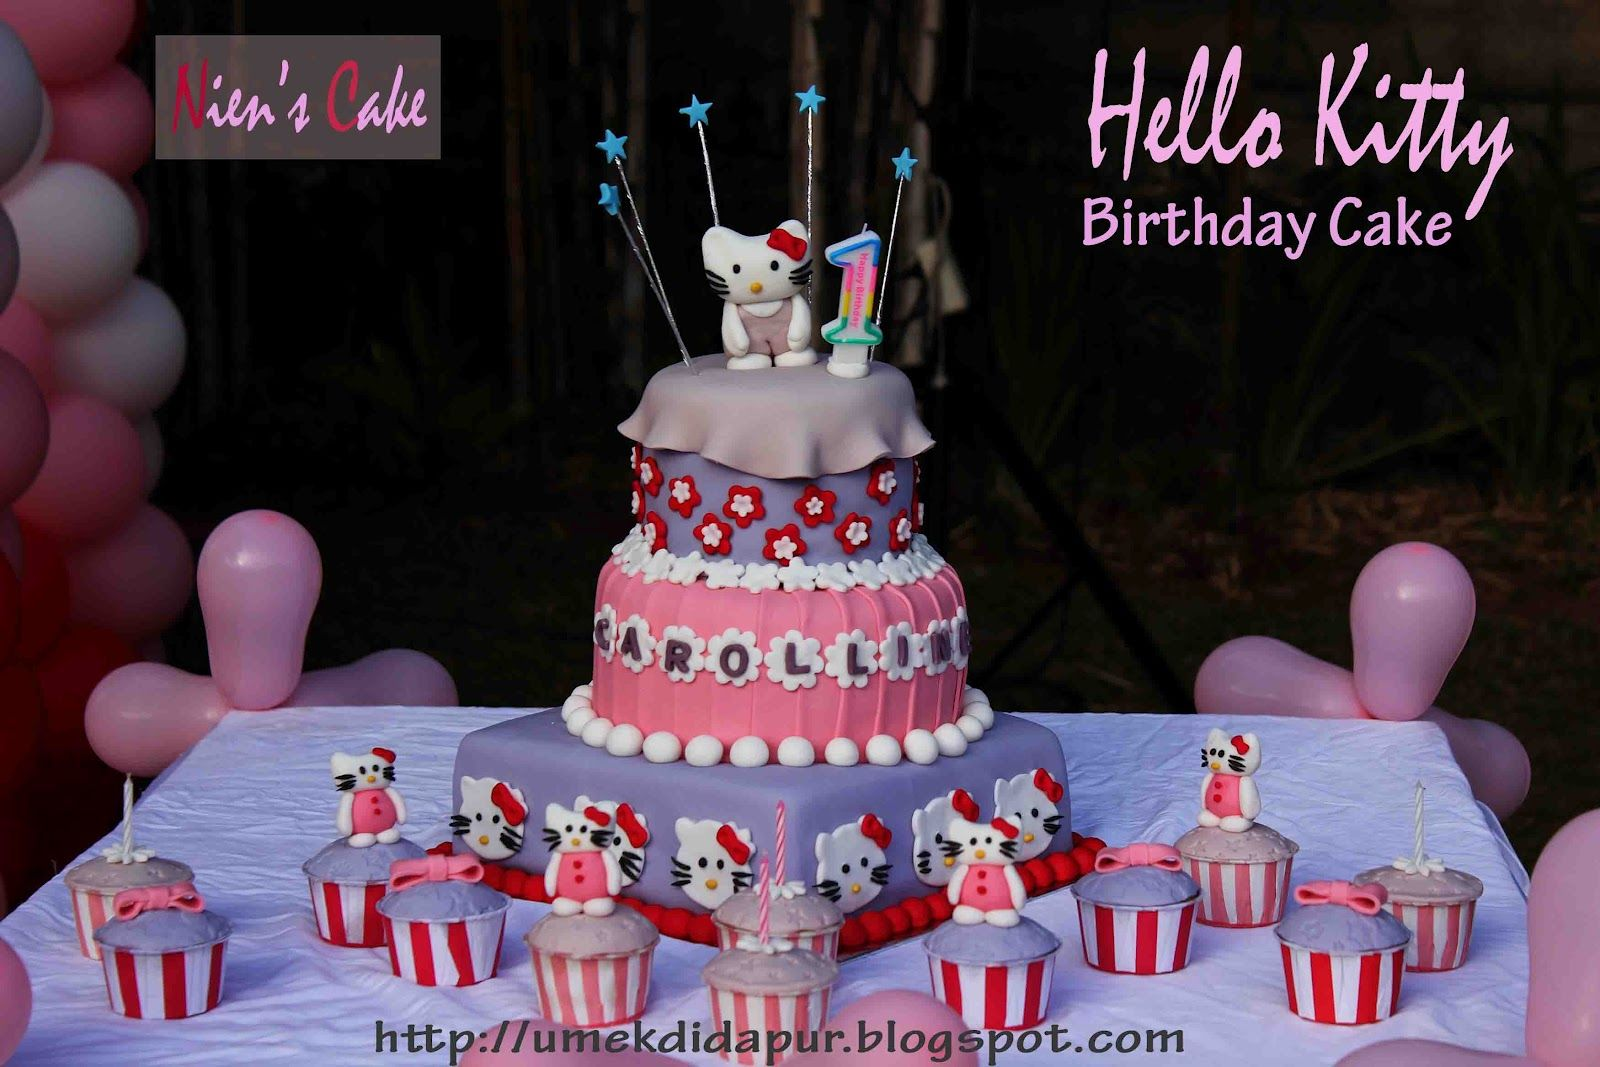 Simple Wallpaper Name Birthday - 53ca1a7ae569983277a4a623e4cf7828  You Should Have_433354.jpg